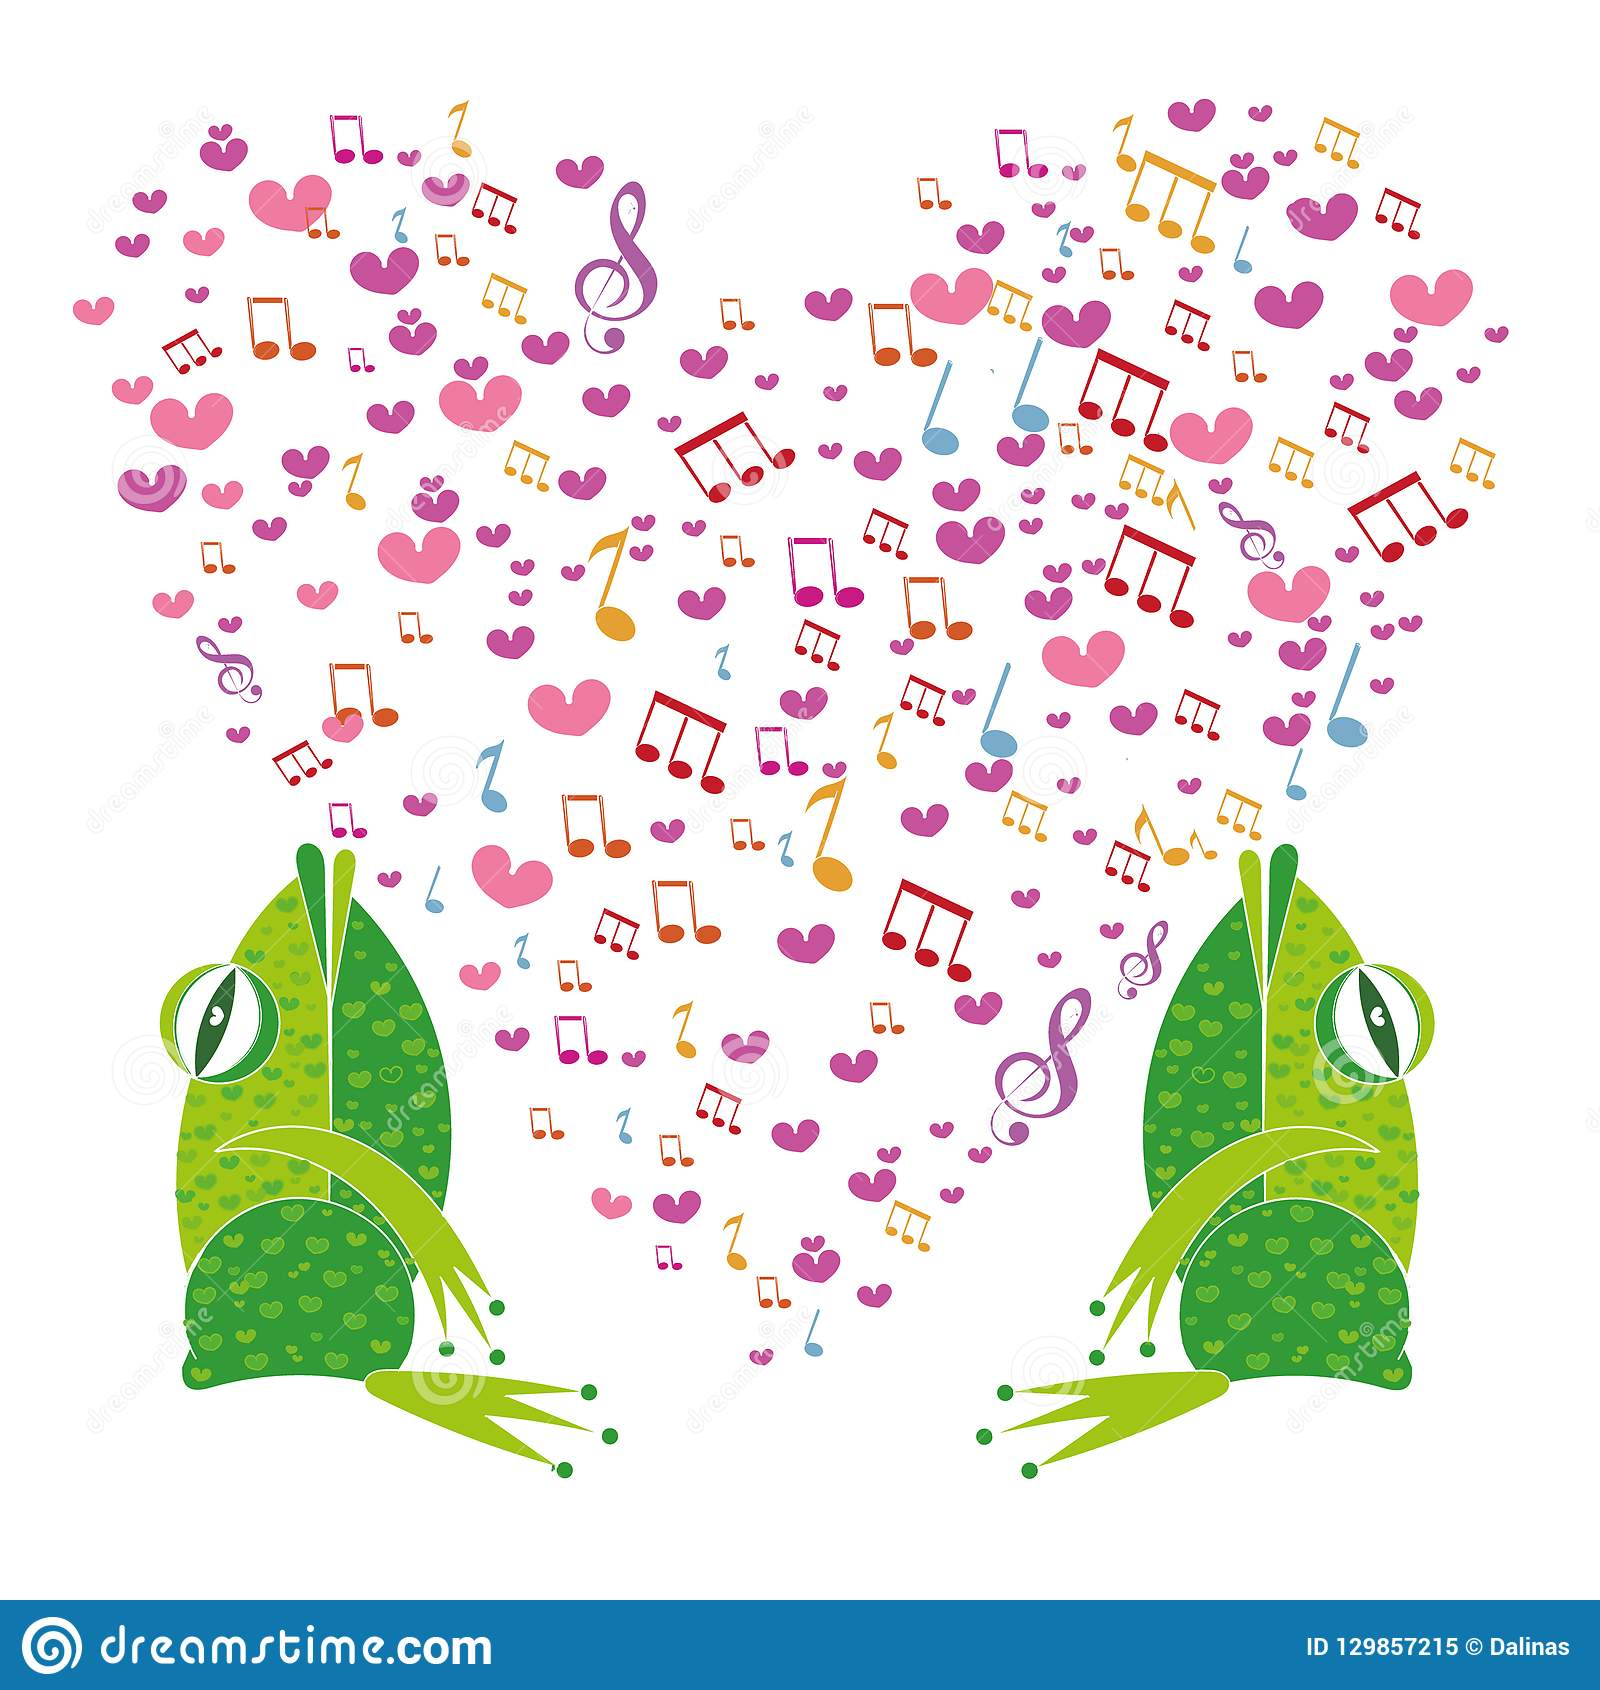 Template Valentine Greeting Cards Musical Notes In The Shape Of A Heart Made Doodle Hearts Valentines Day